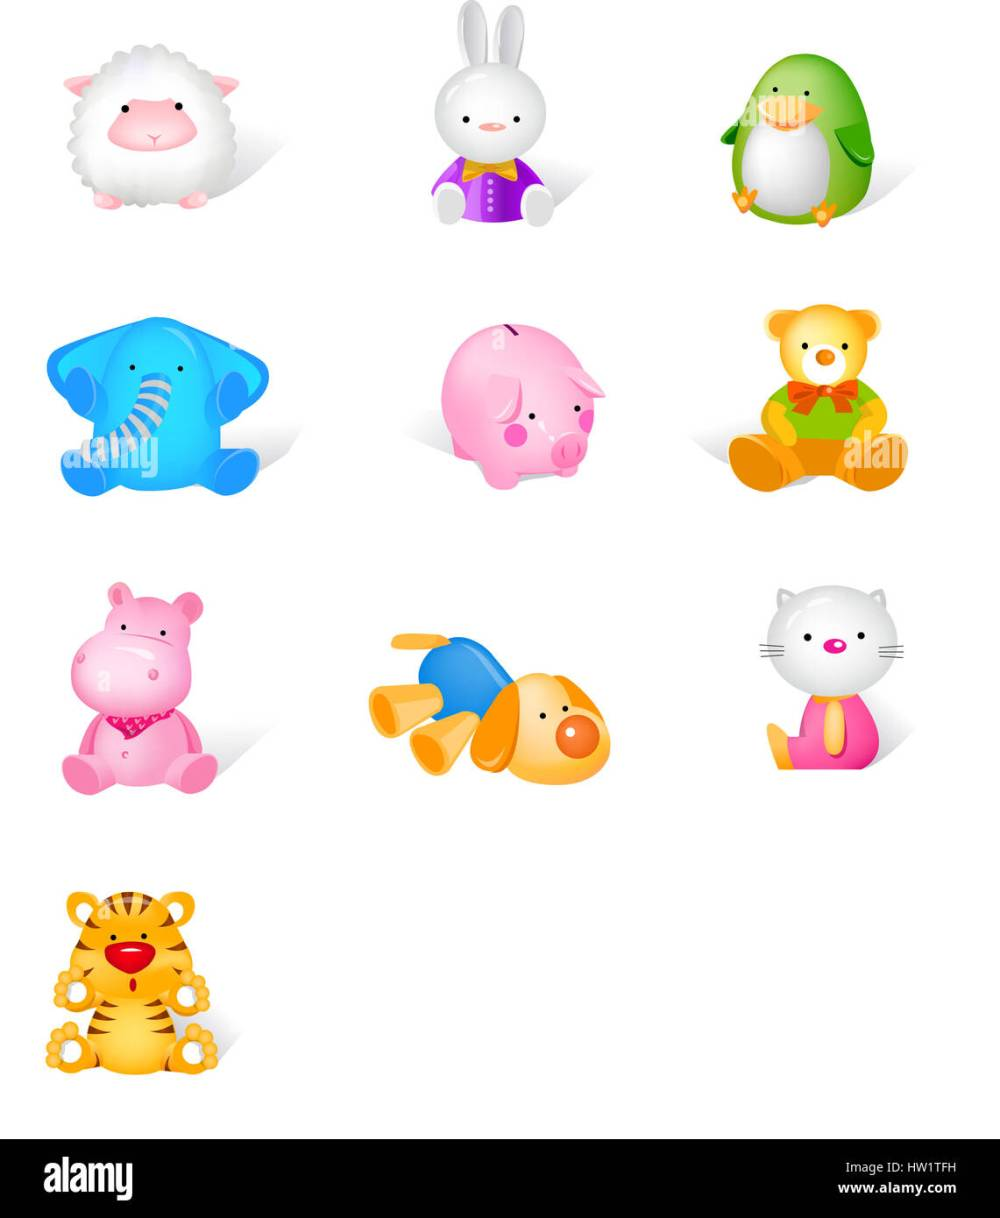 medium resolution of bear cart cat childhood clip art clipart color colour color image computer graphics computer icon craft digitally generated image dog elephant fun graphics